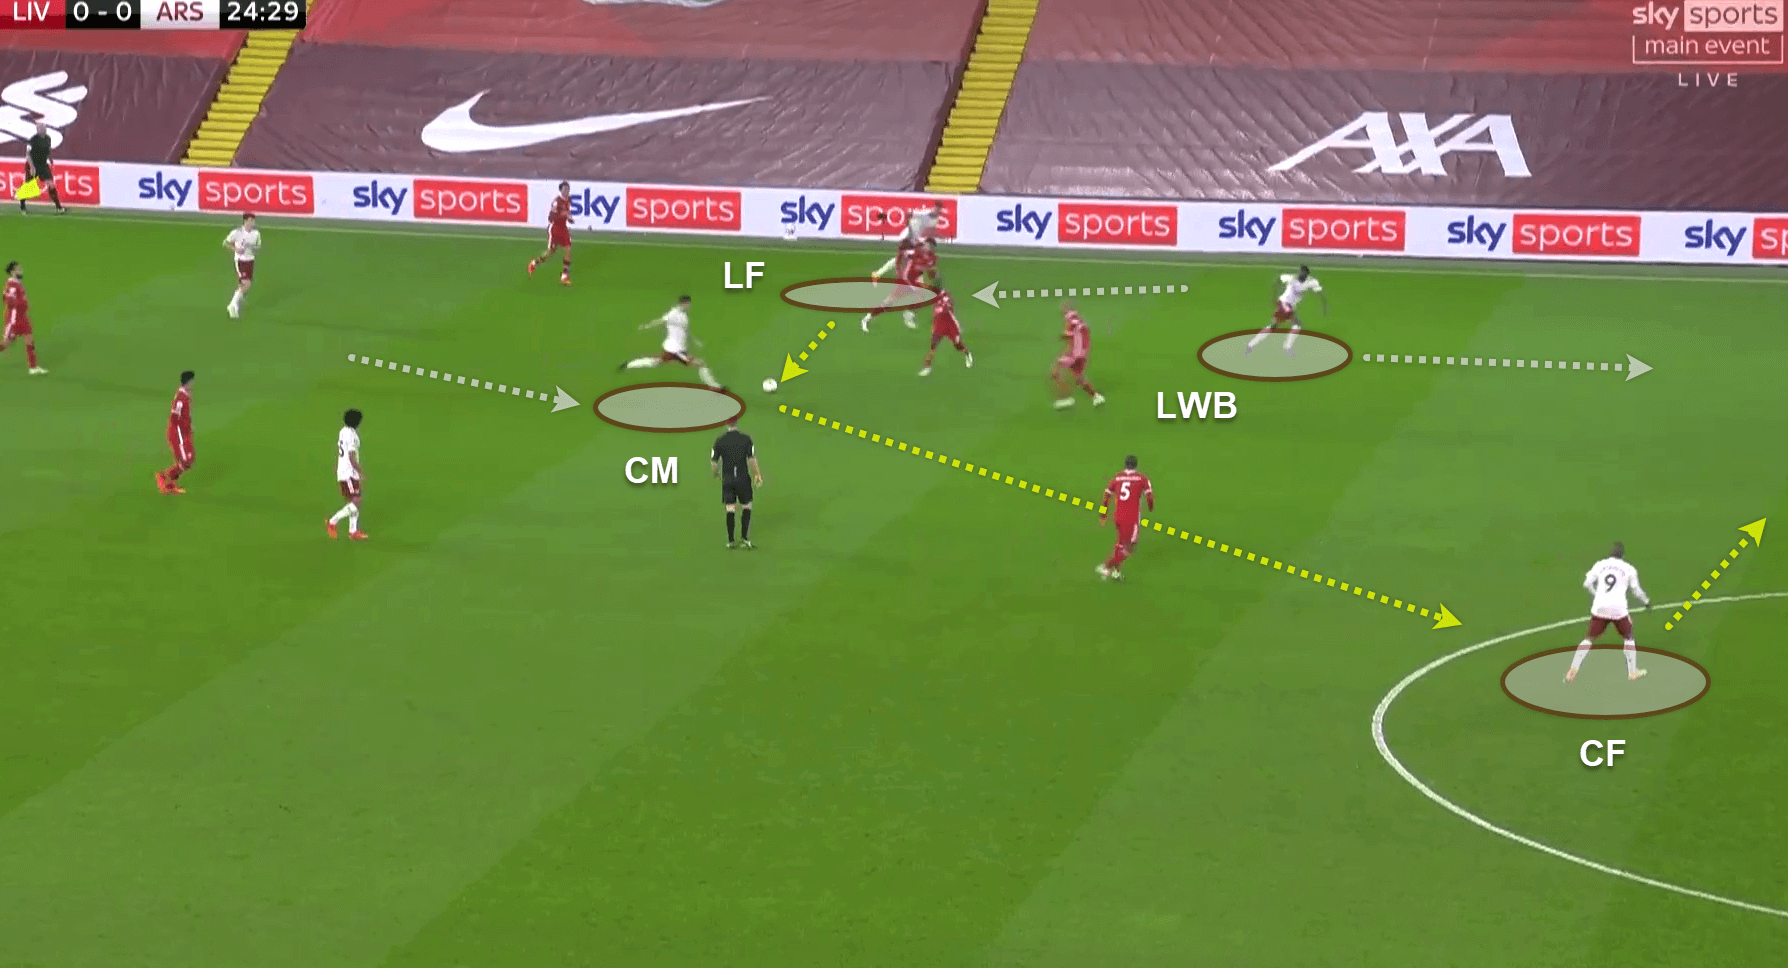 Premier League 2020/21: Liverpool v Arsenal - tactical analysis - tactics